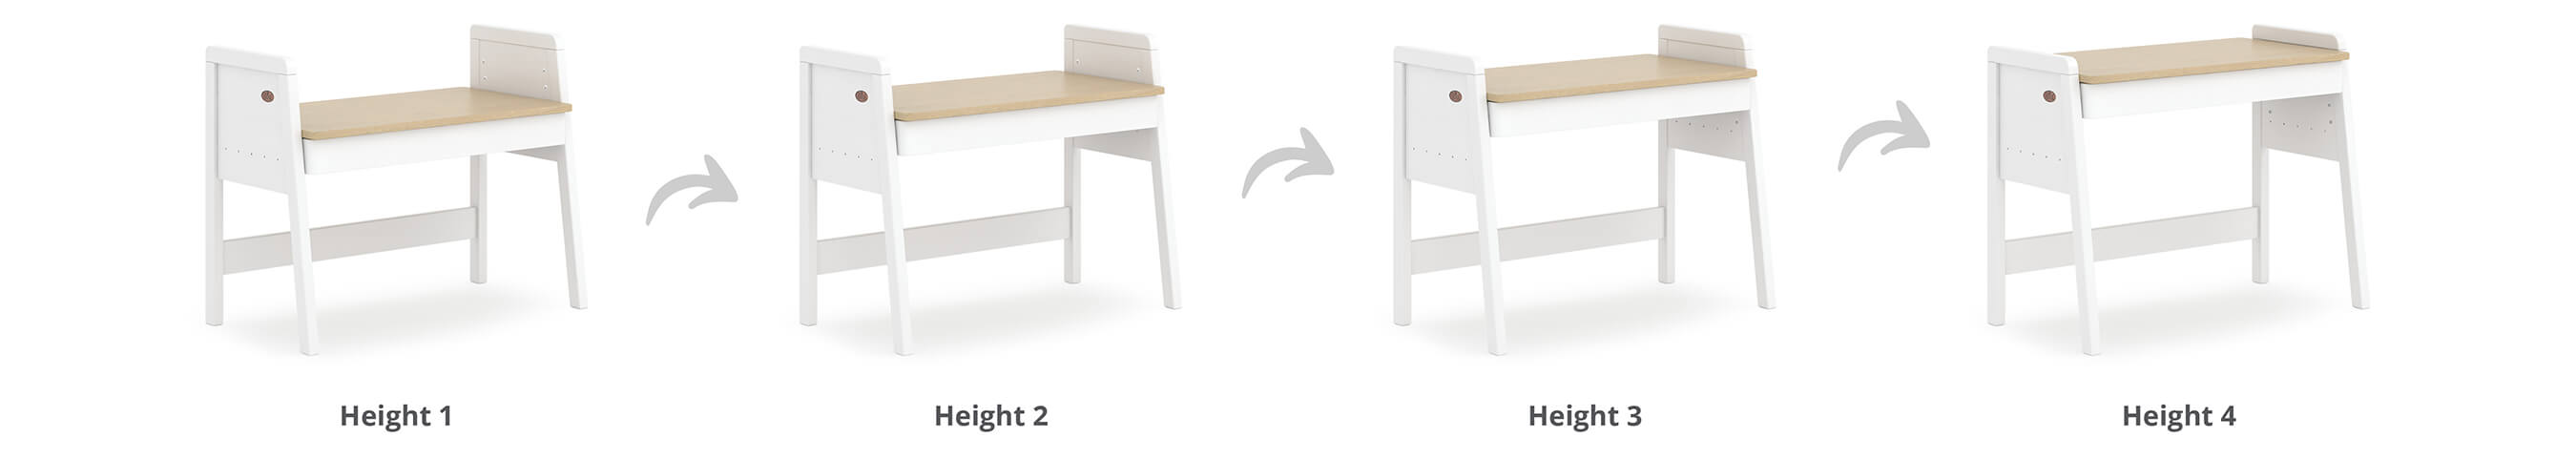 Feature_Highlight_CMS_Blocks_Height_Adjustable_Desks_and_Chairs_January_2021-013